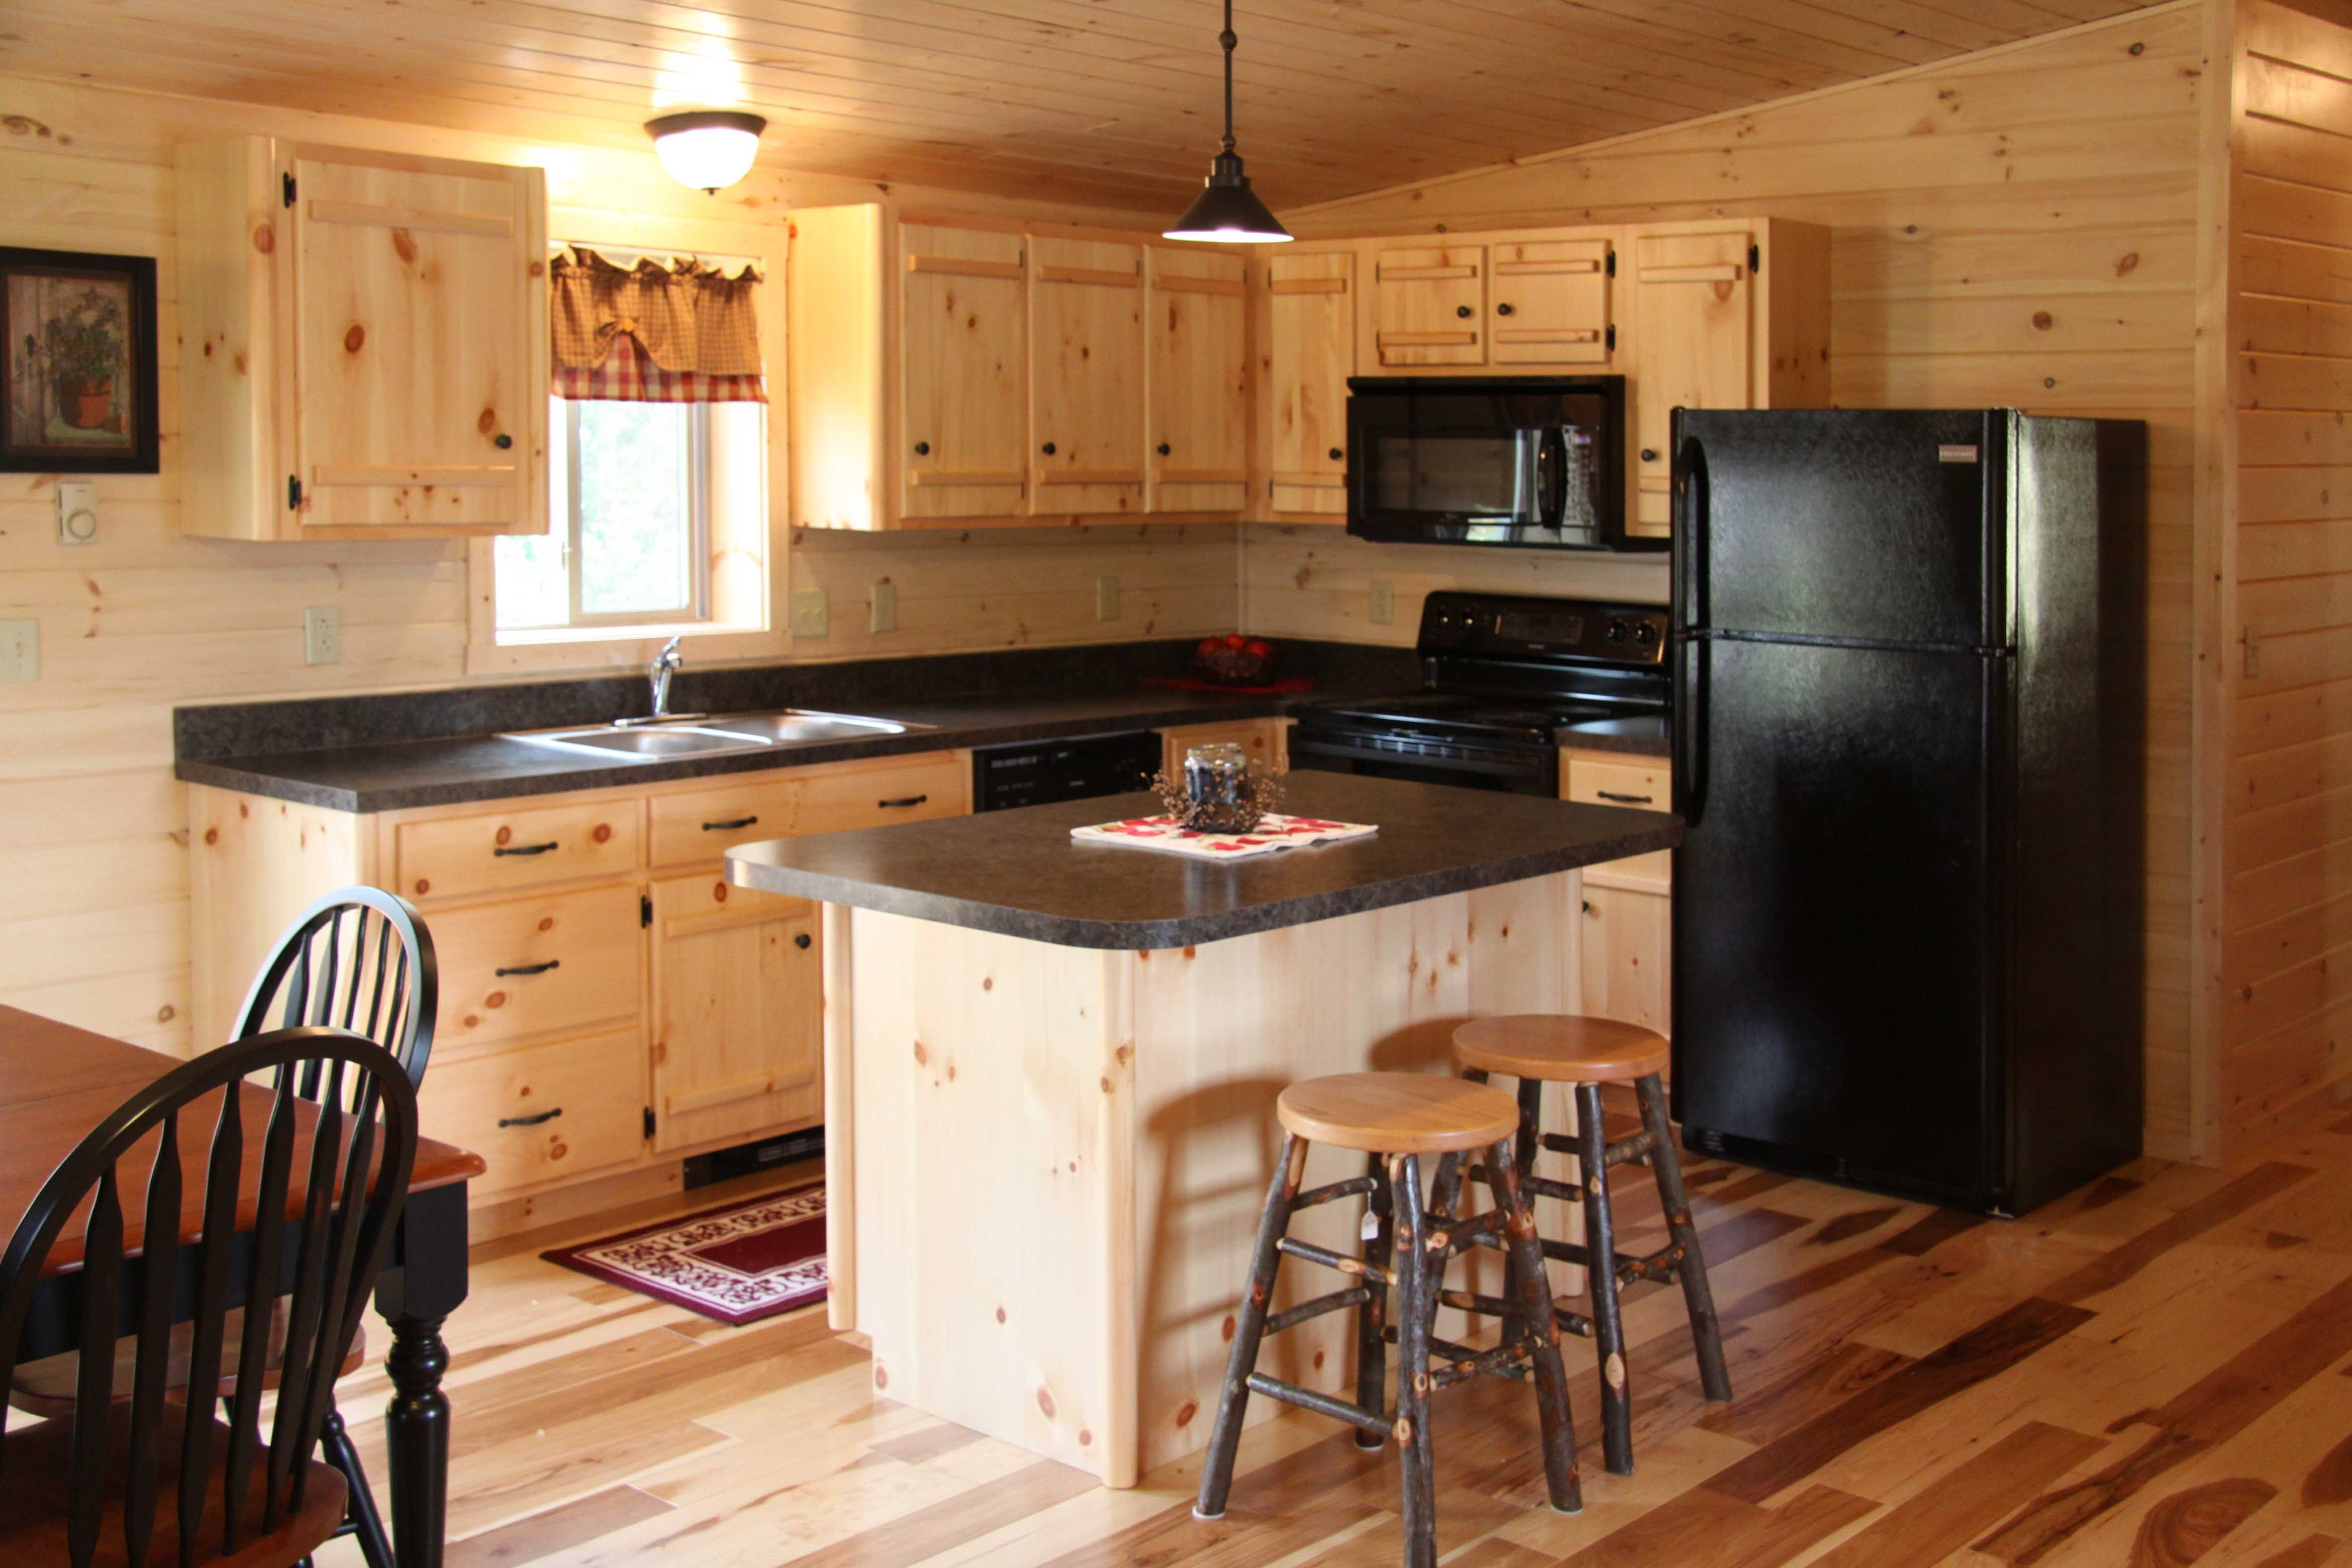 Kitchen Layout 9x9 Cabin Options Cozy Cabins Llc   Small ...